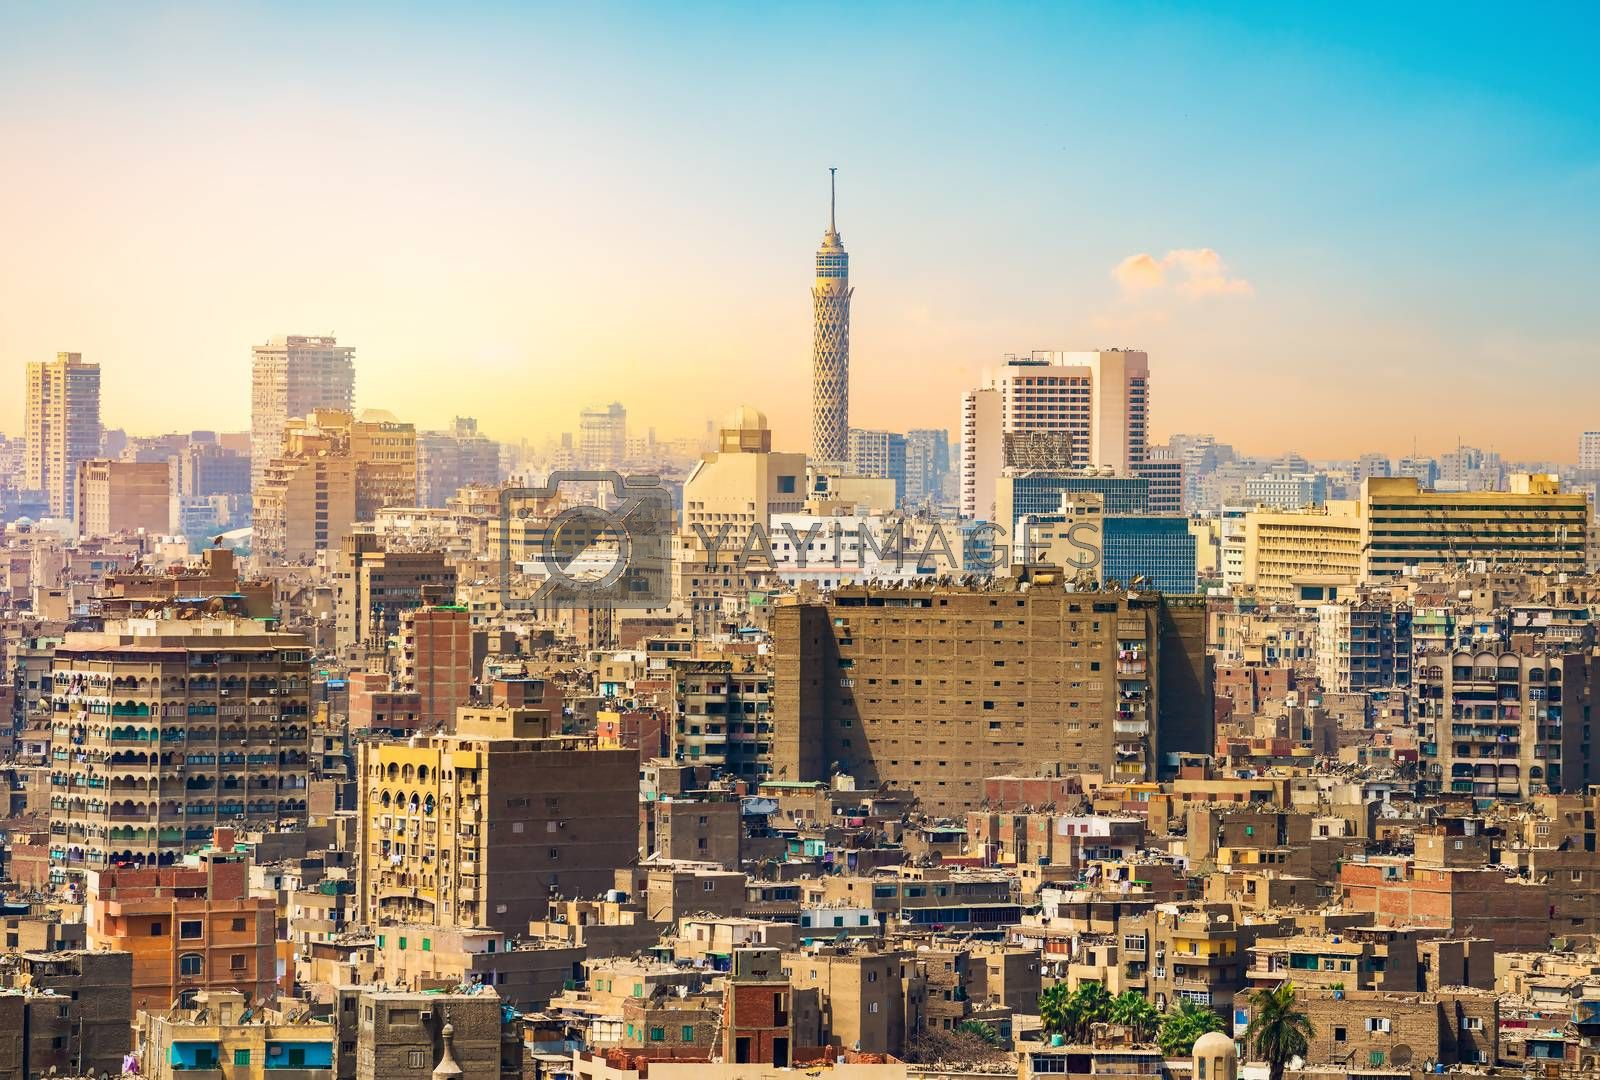 Beautiful panorama of the city of Cairo in Egypt